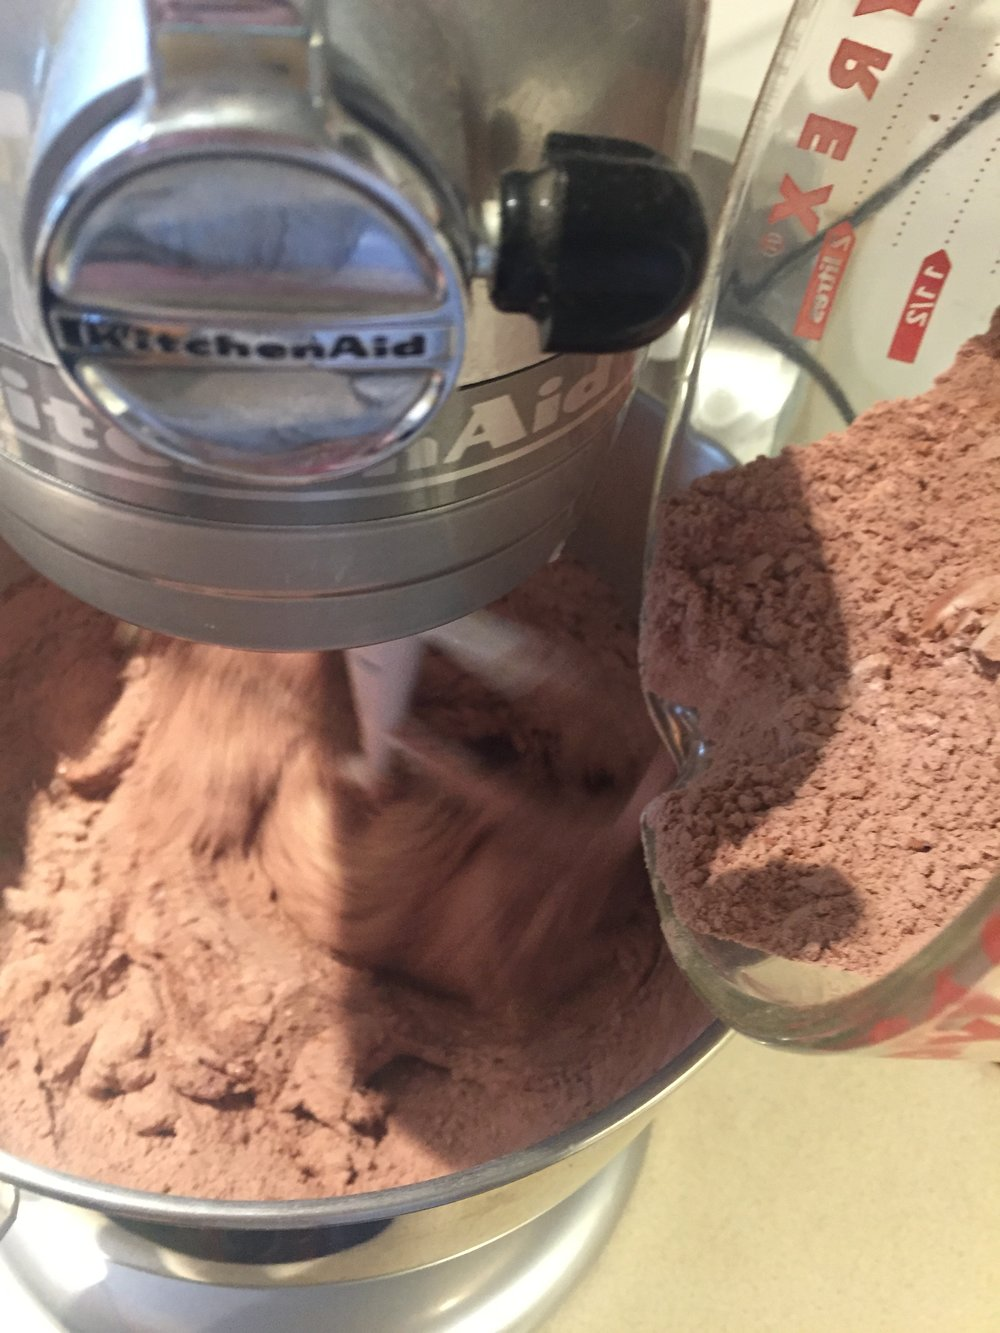 Alternate between adding the dry ingredients and the milk until fully combined.